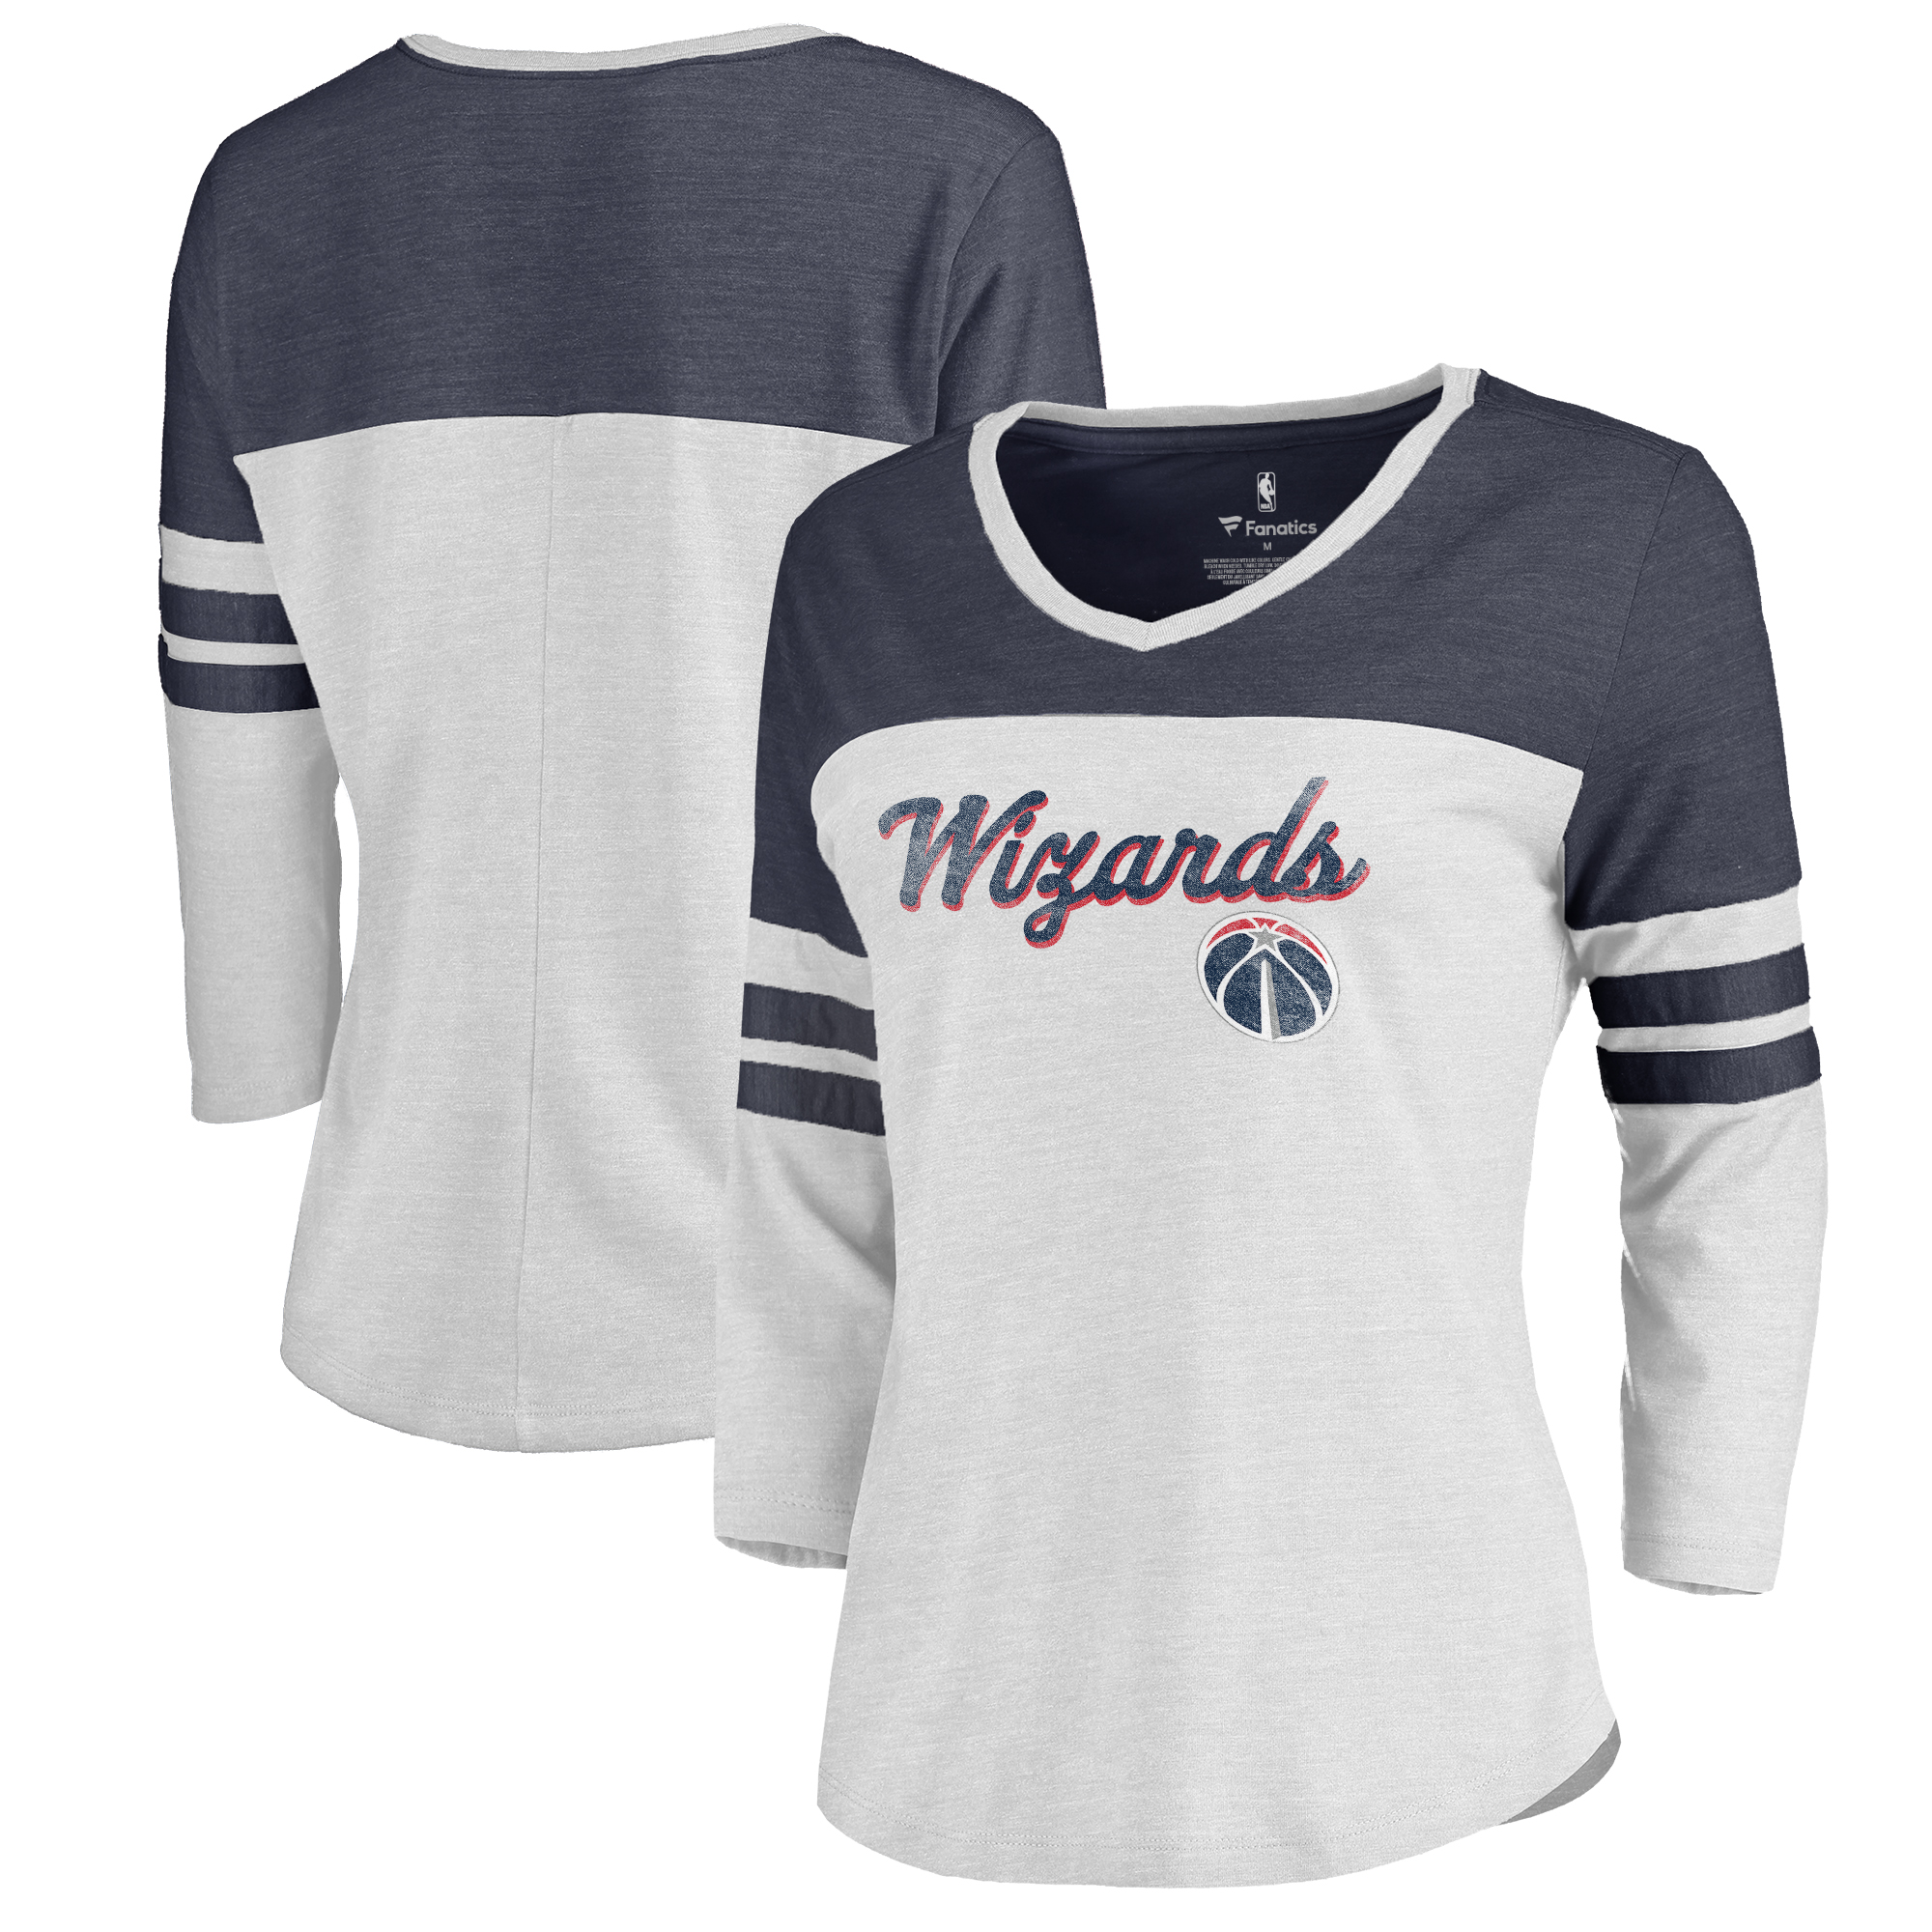 Washington Wizards Fanatics Branded Women's Rising Script Plus Size Color Block 3/4 Sleeve Tri-Blend T-Shirt - White